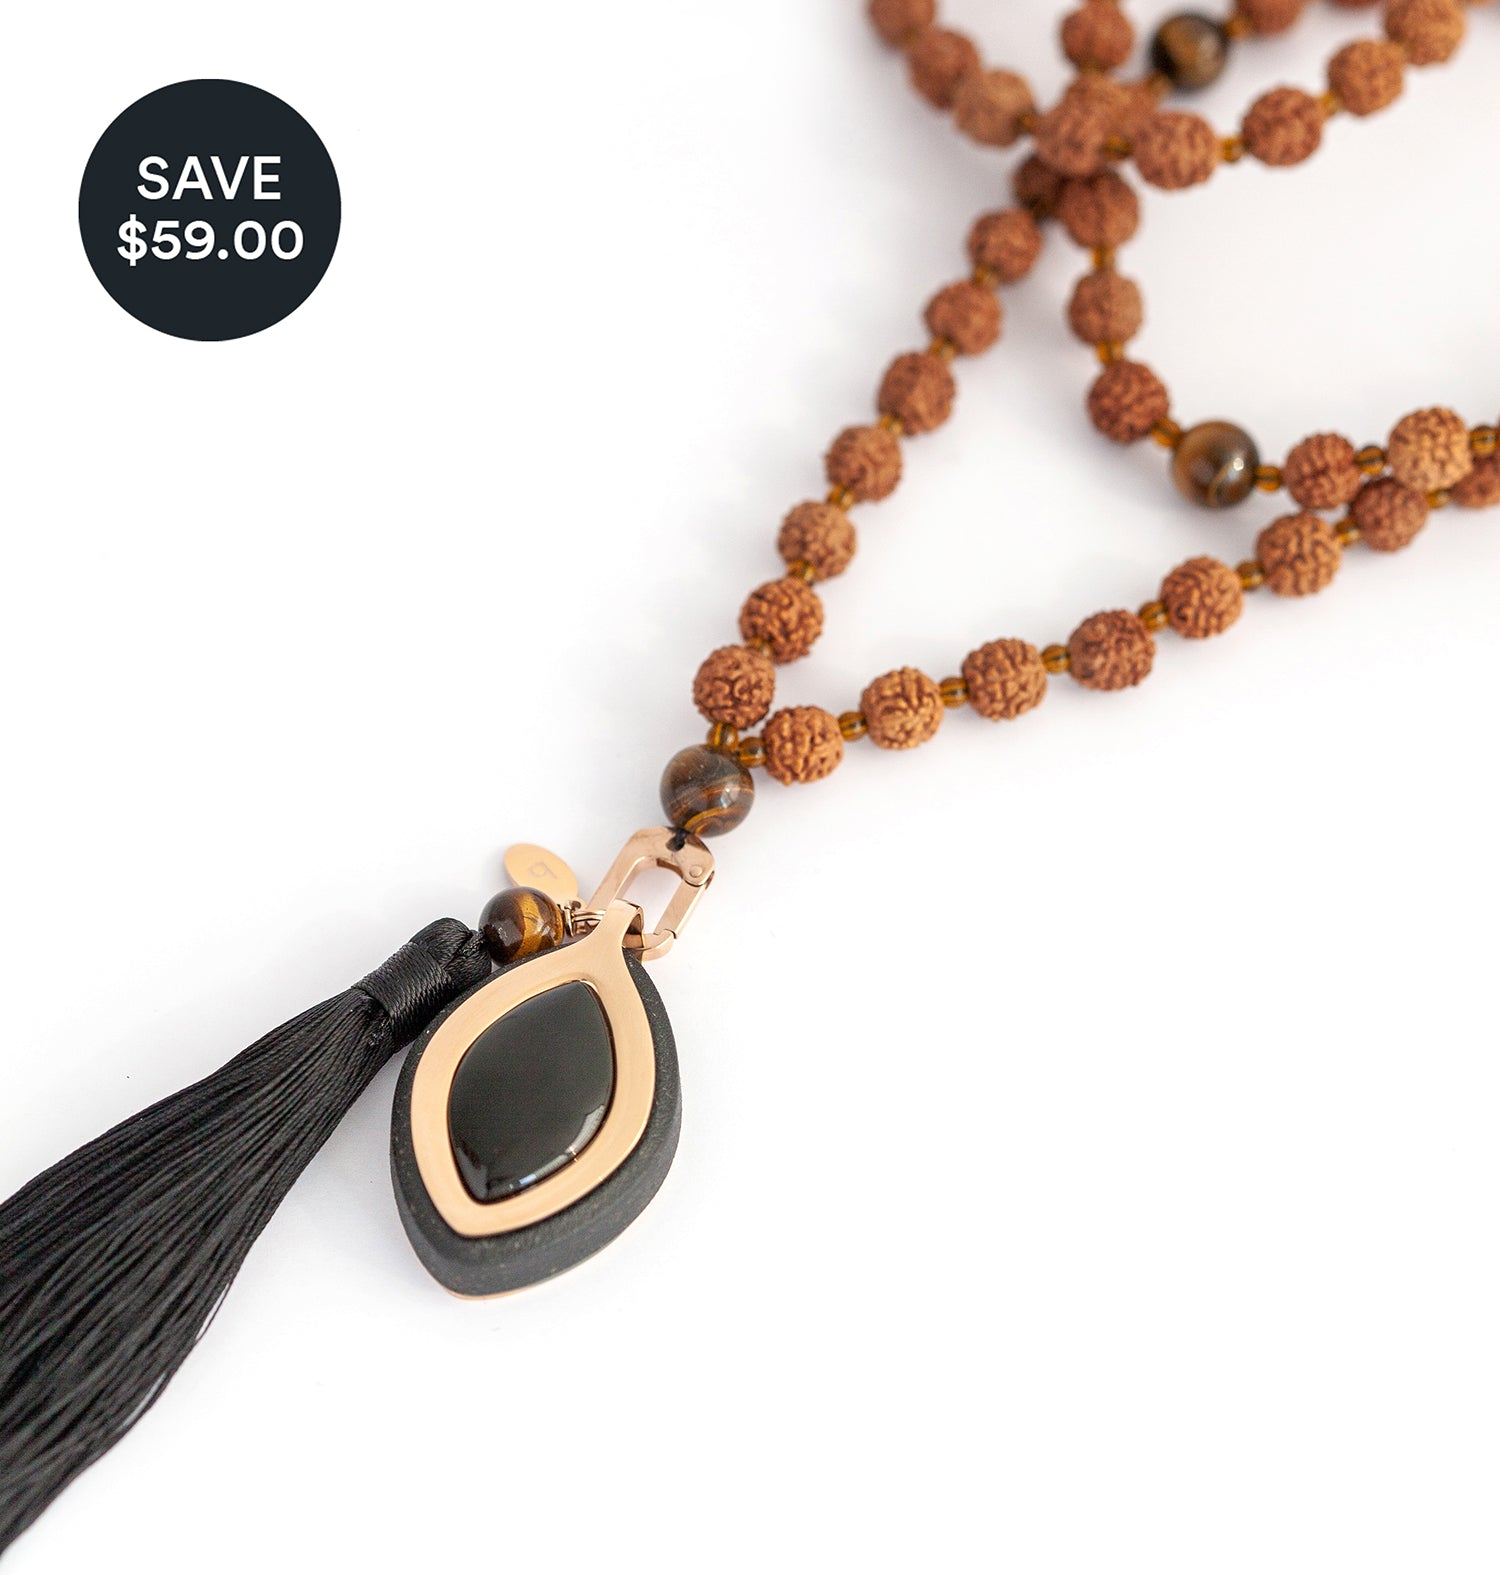 Leaf Chakra Power + FREE Mala necklace | Prosperity - Bellabeat